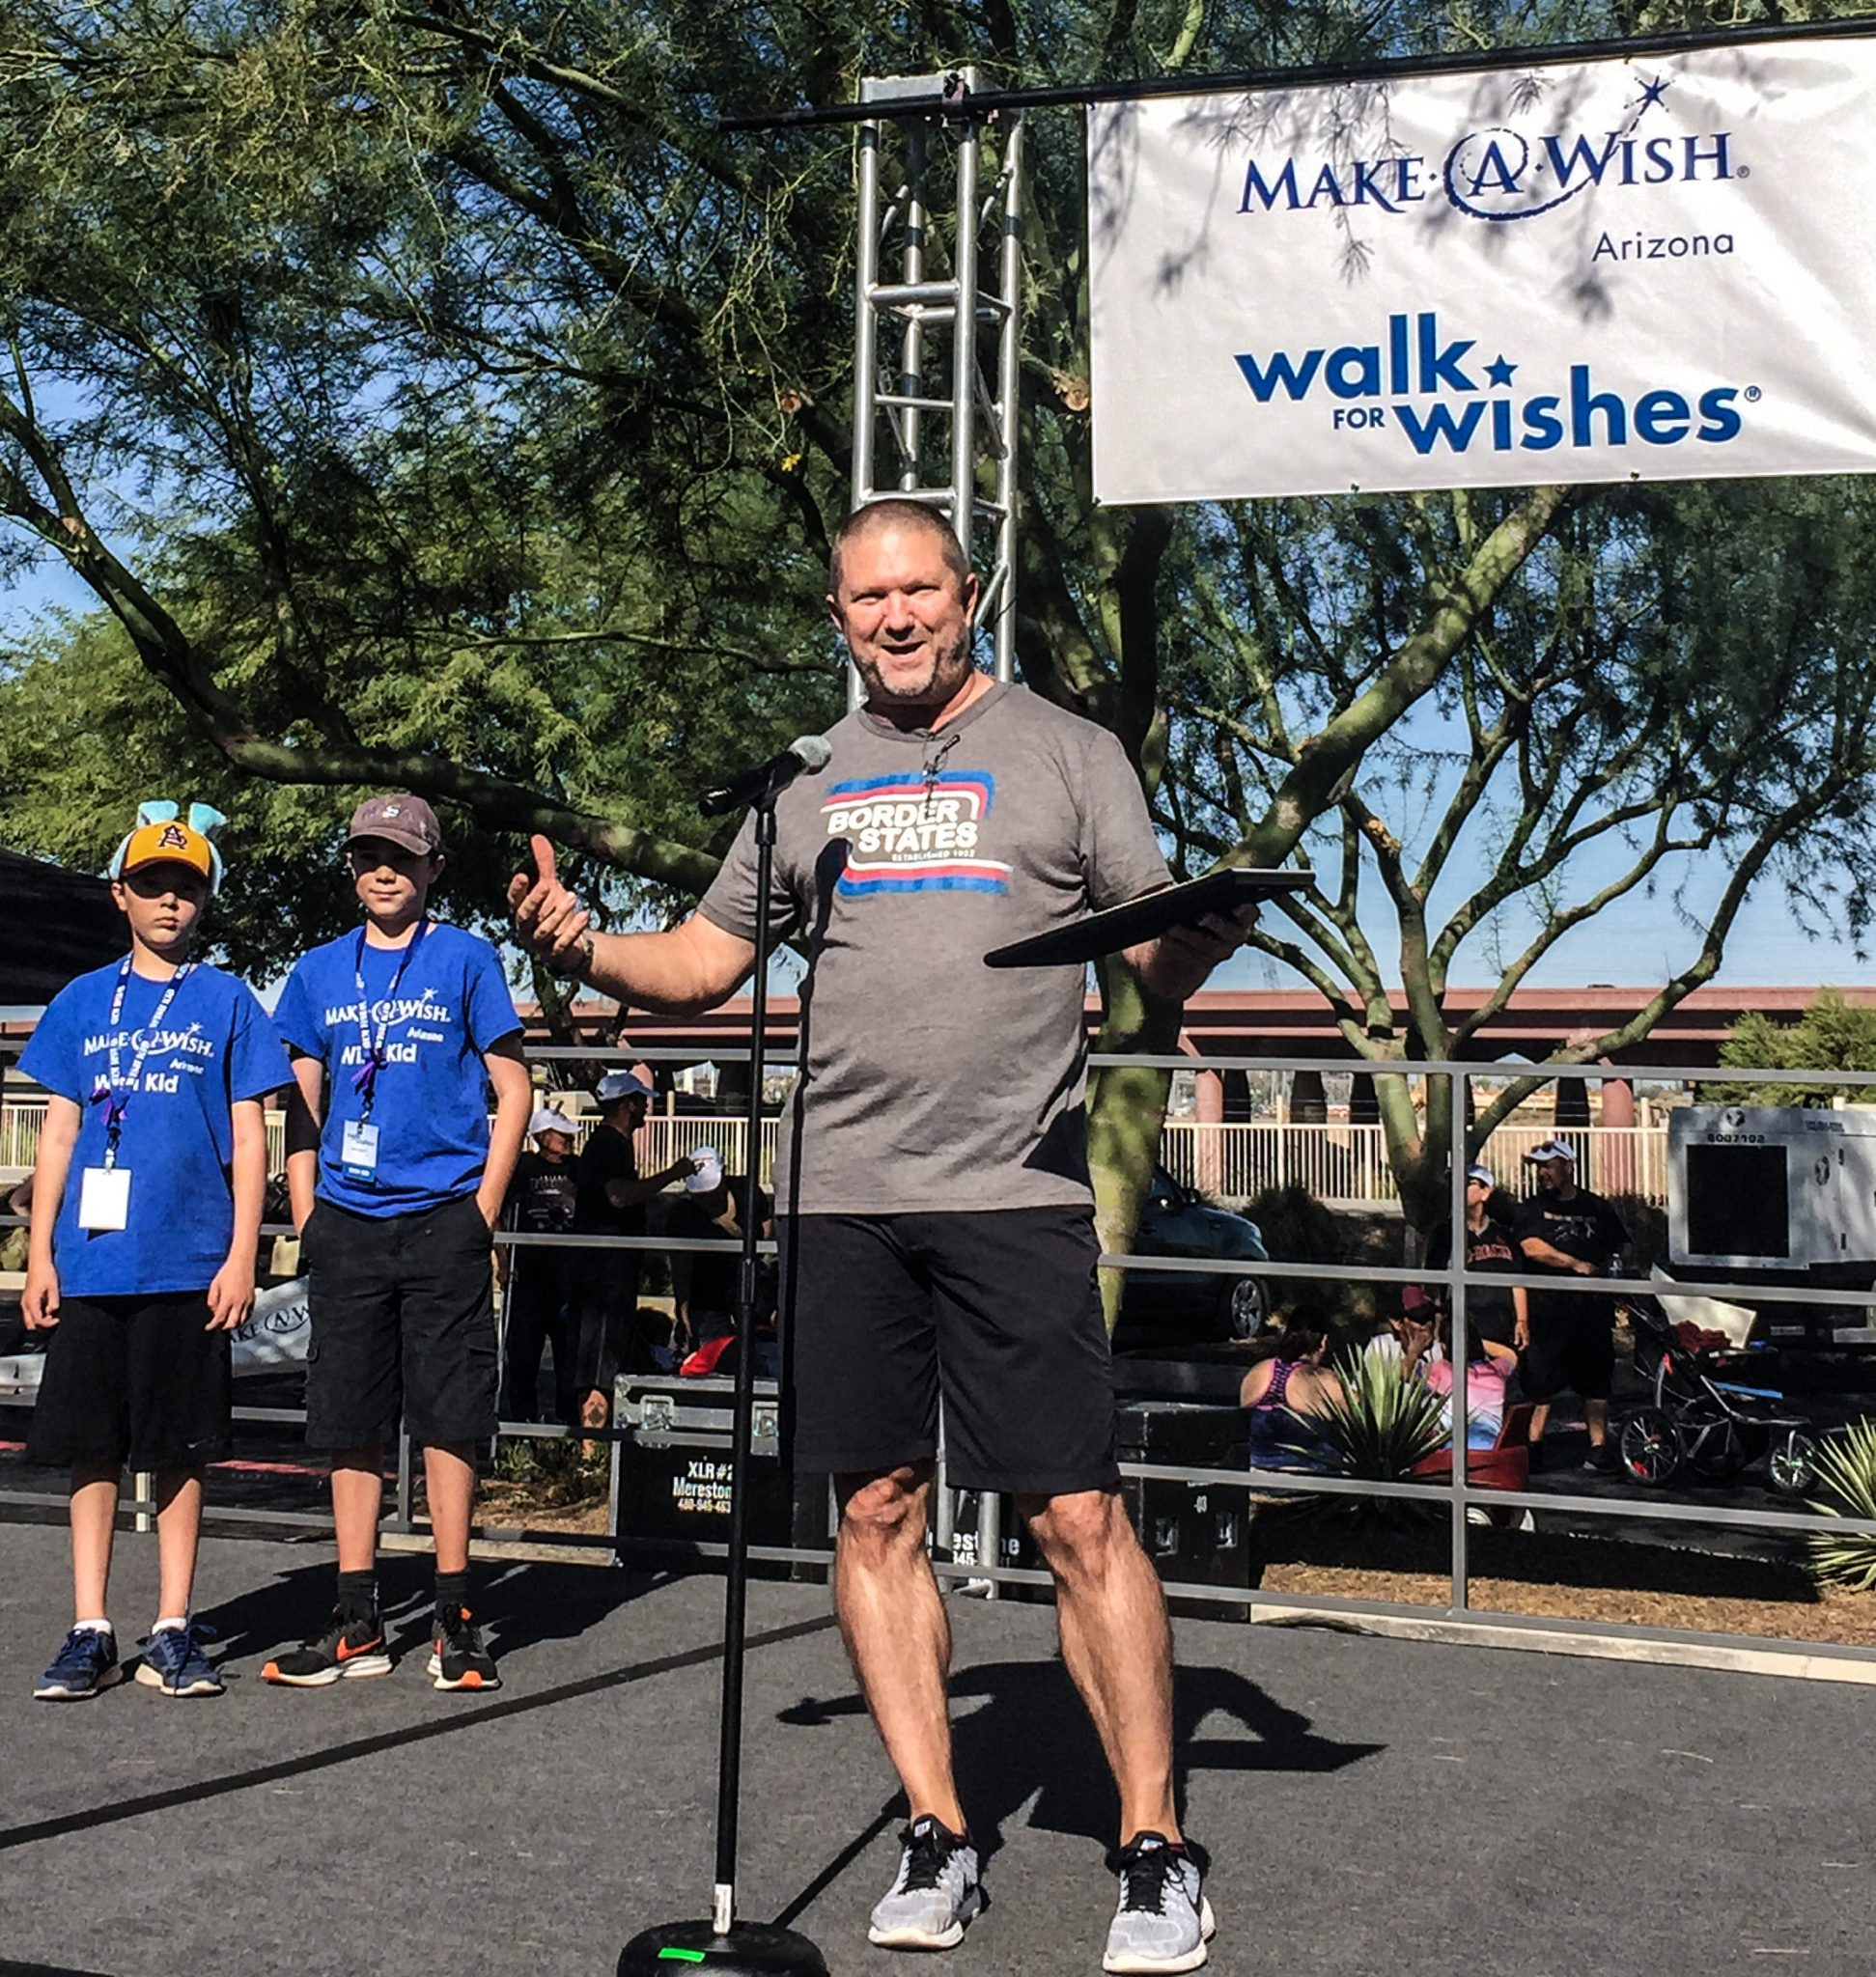 Tough shoes to fill: Employee-owner is top fundraiser for Make-A-Wish walk